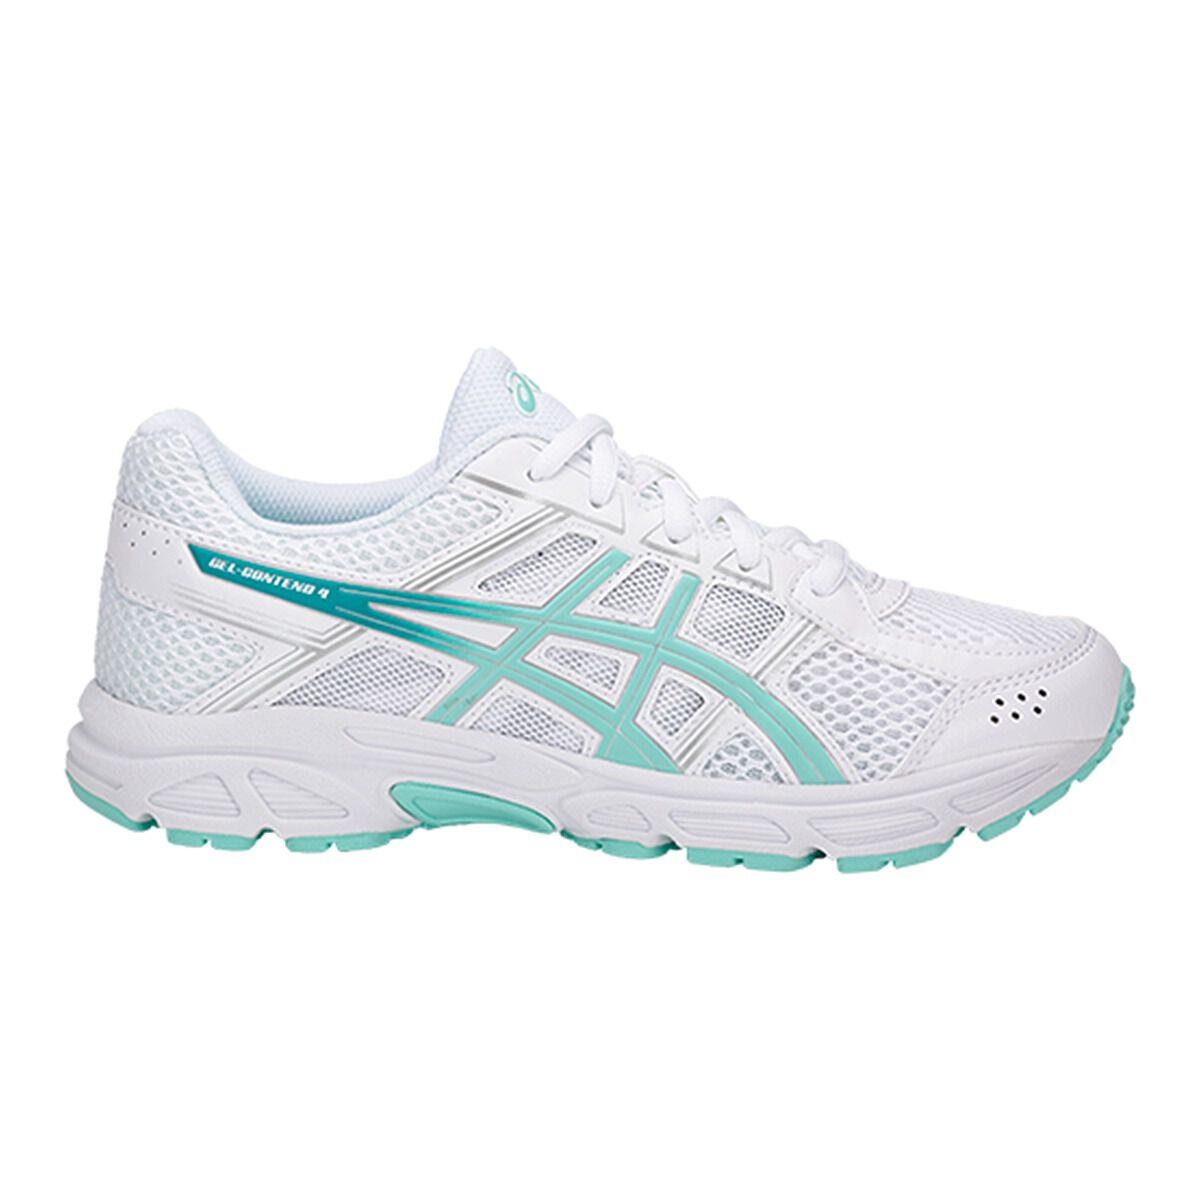 asics contend 4 kids, OFF 71%,Buy!